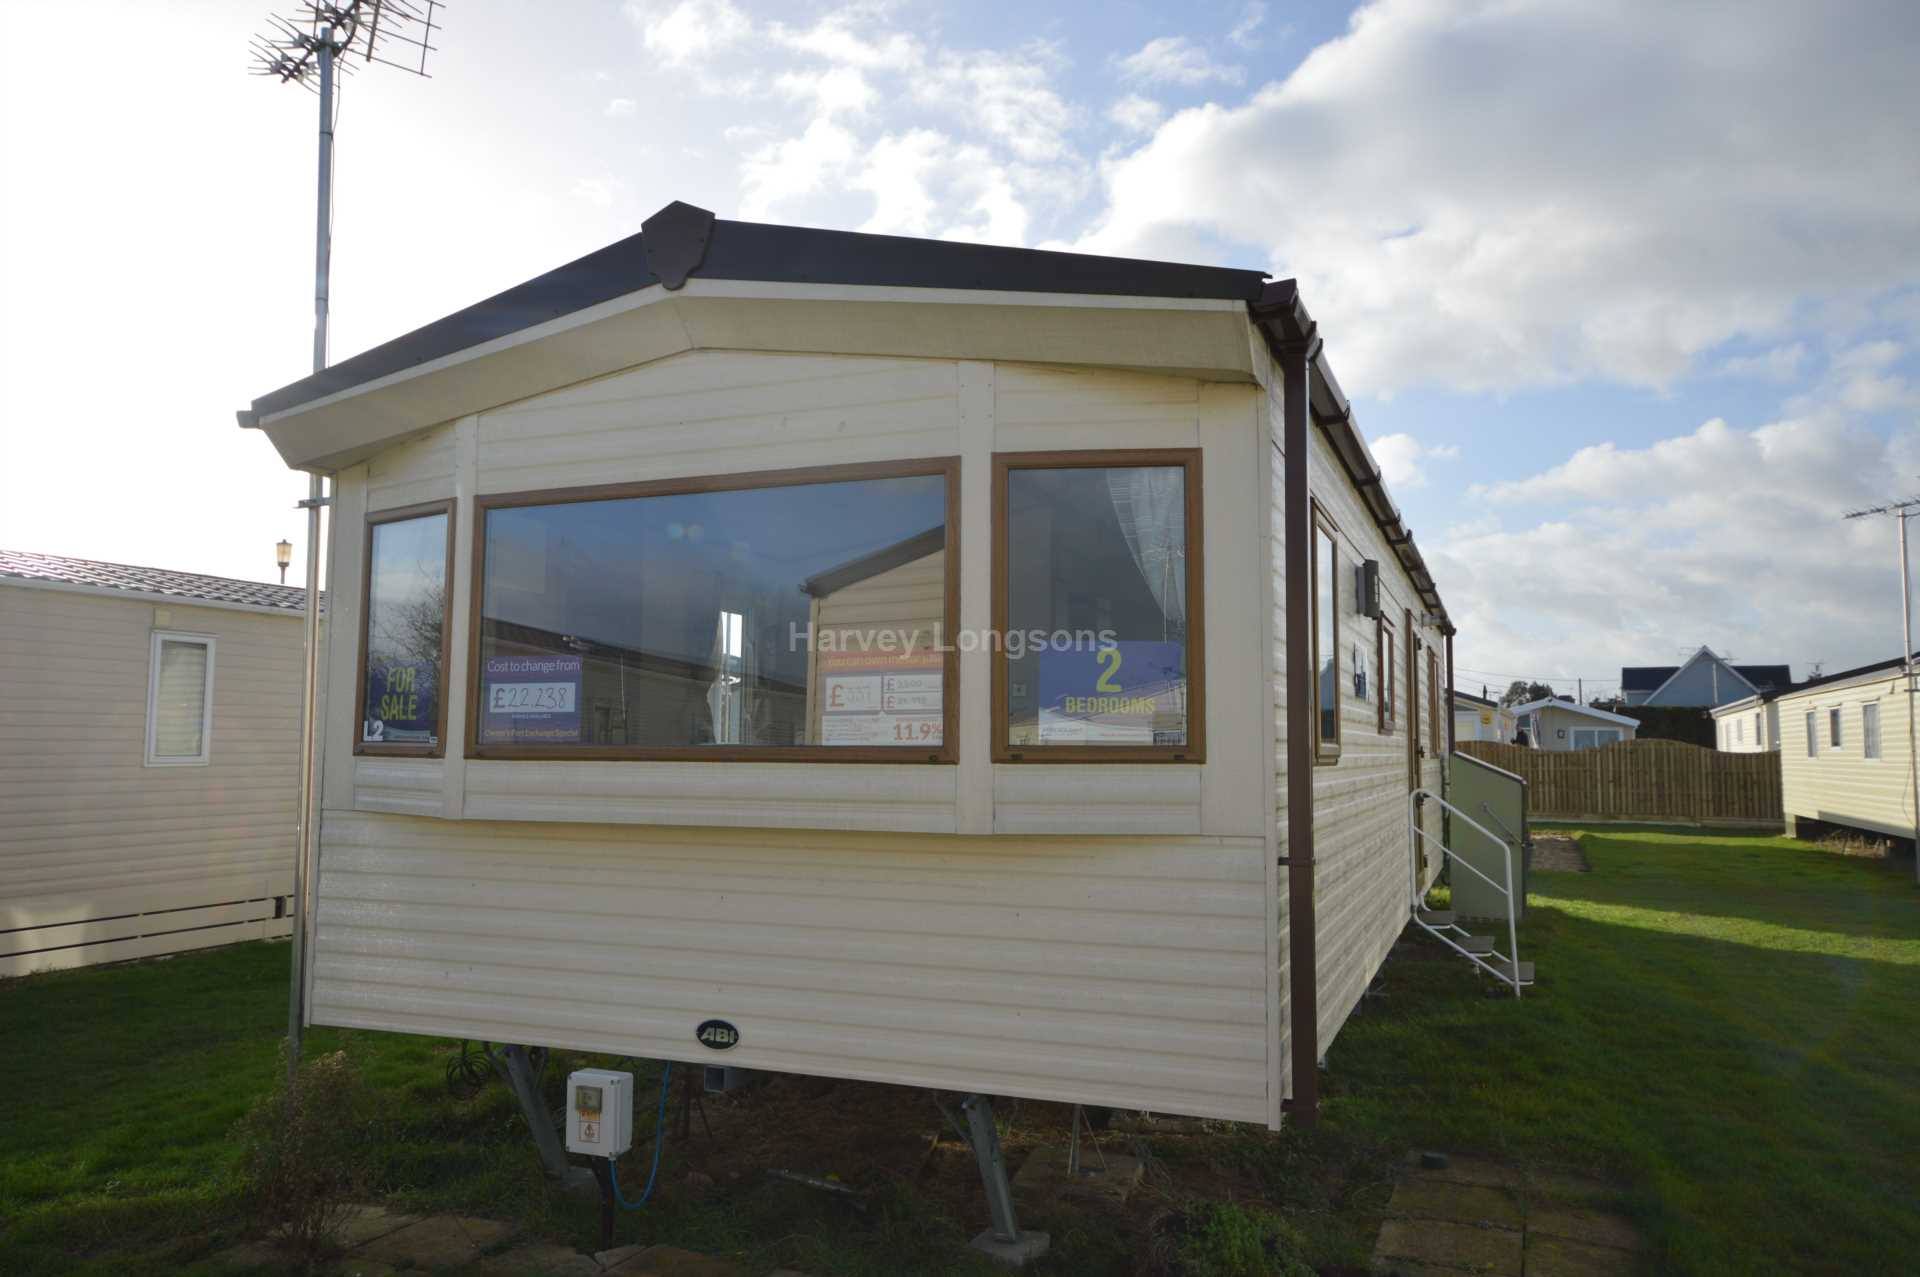 Lastest New And Secondhand Caravans For Sale In Whitstable